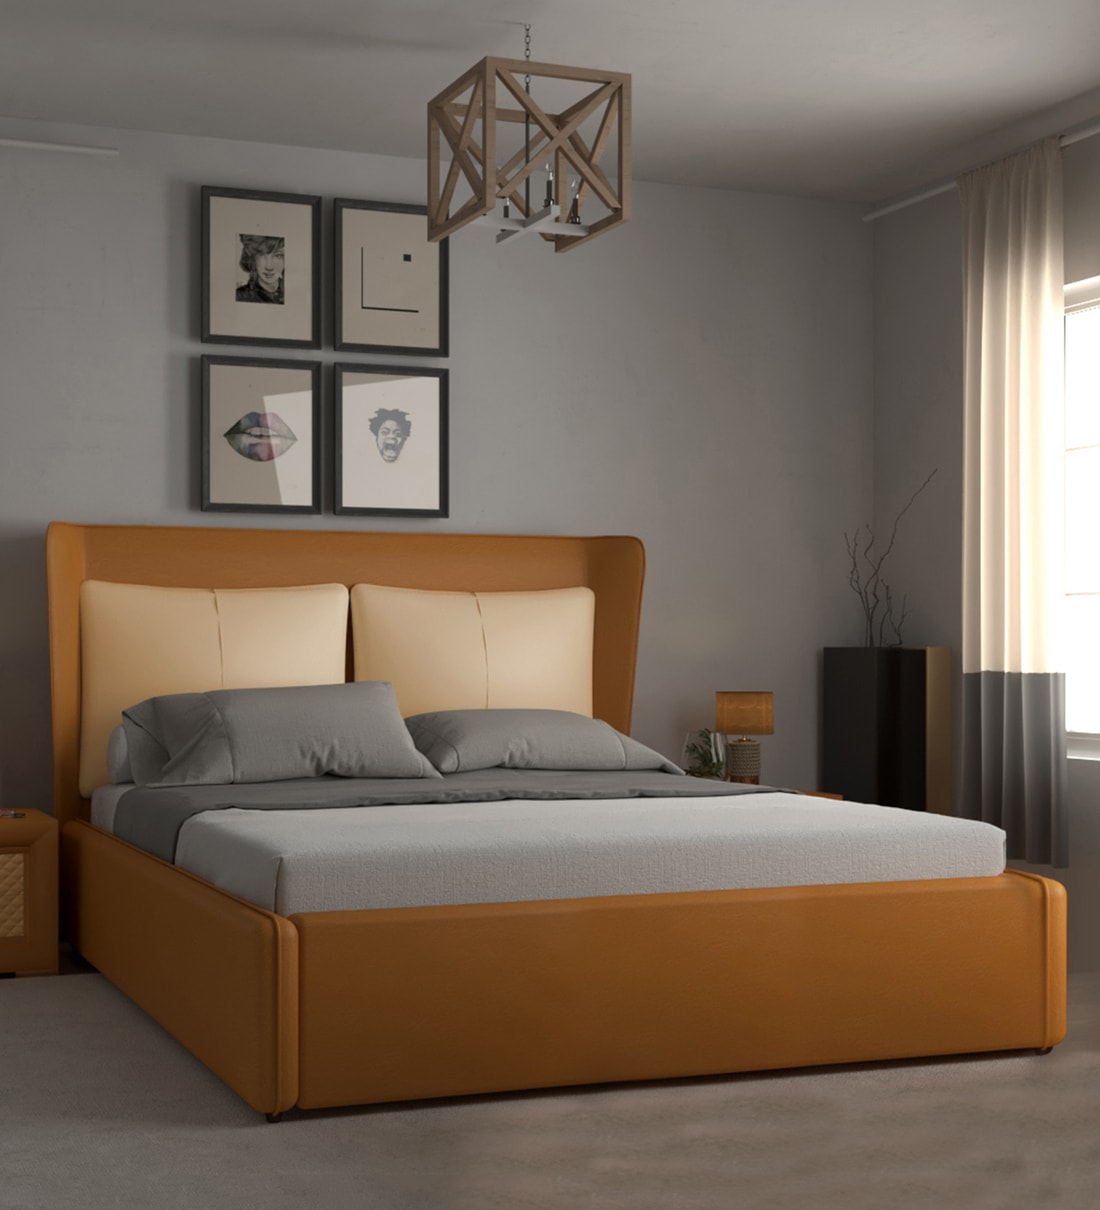 Buy Davis King Size Upholstered Bed With Hydraulic Storage In Tan Colour By Home City Online King Size Upholstered Beds Beds Furniture Pepperfry Product